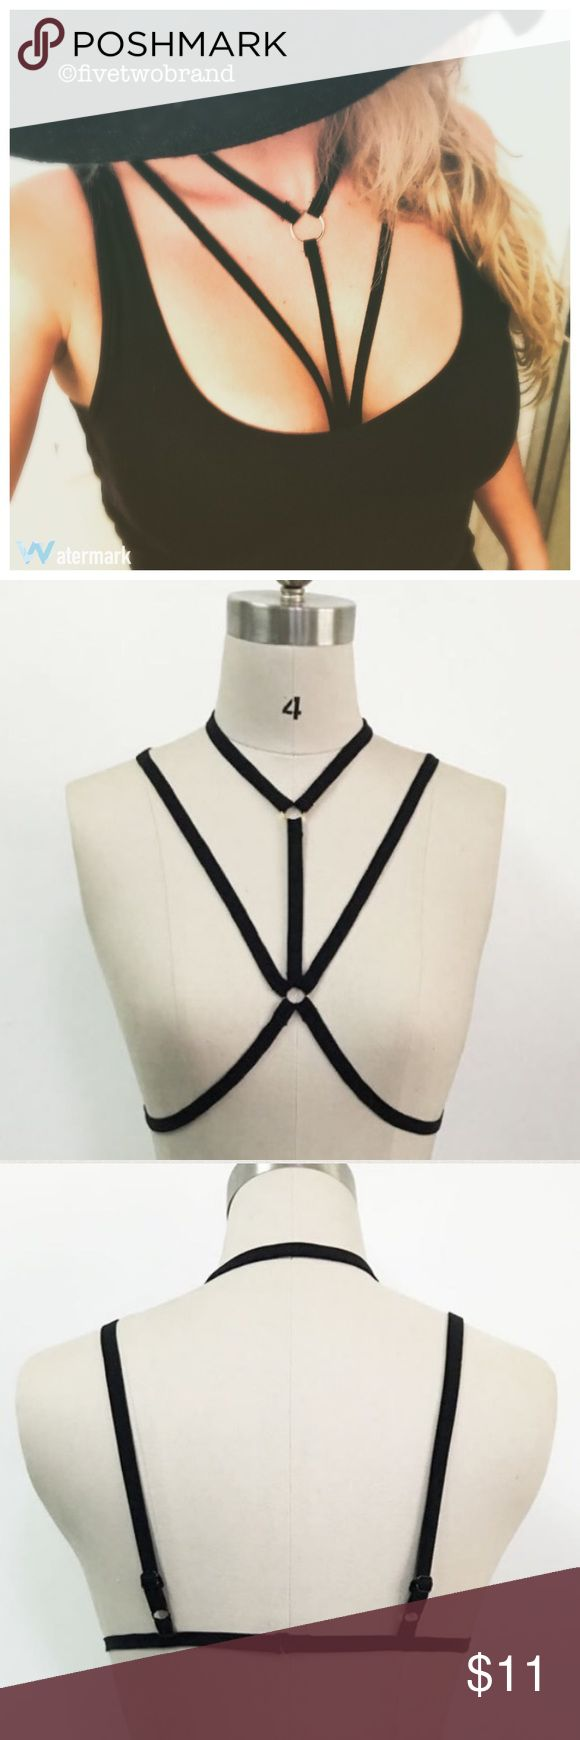 Sexy body harness in black: sm,md,lrg Only 1 medium left. Large is temporarily out of stock. Intimates & Sleepwear Bras